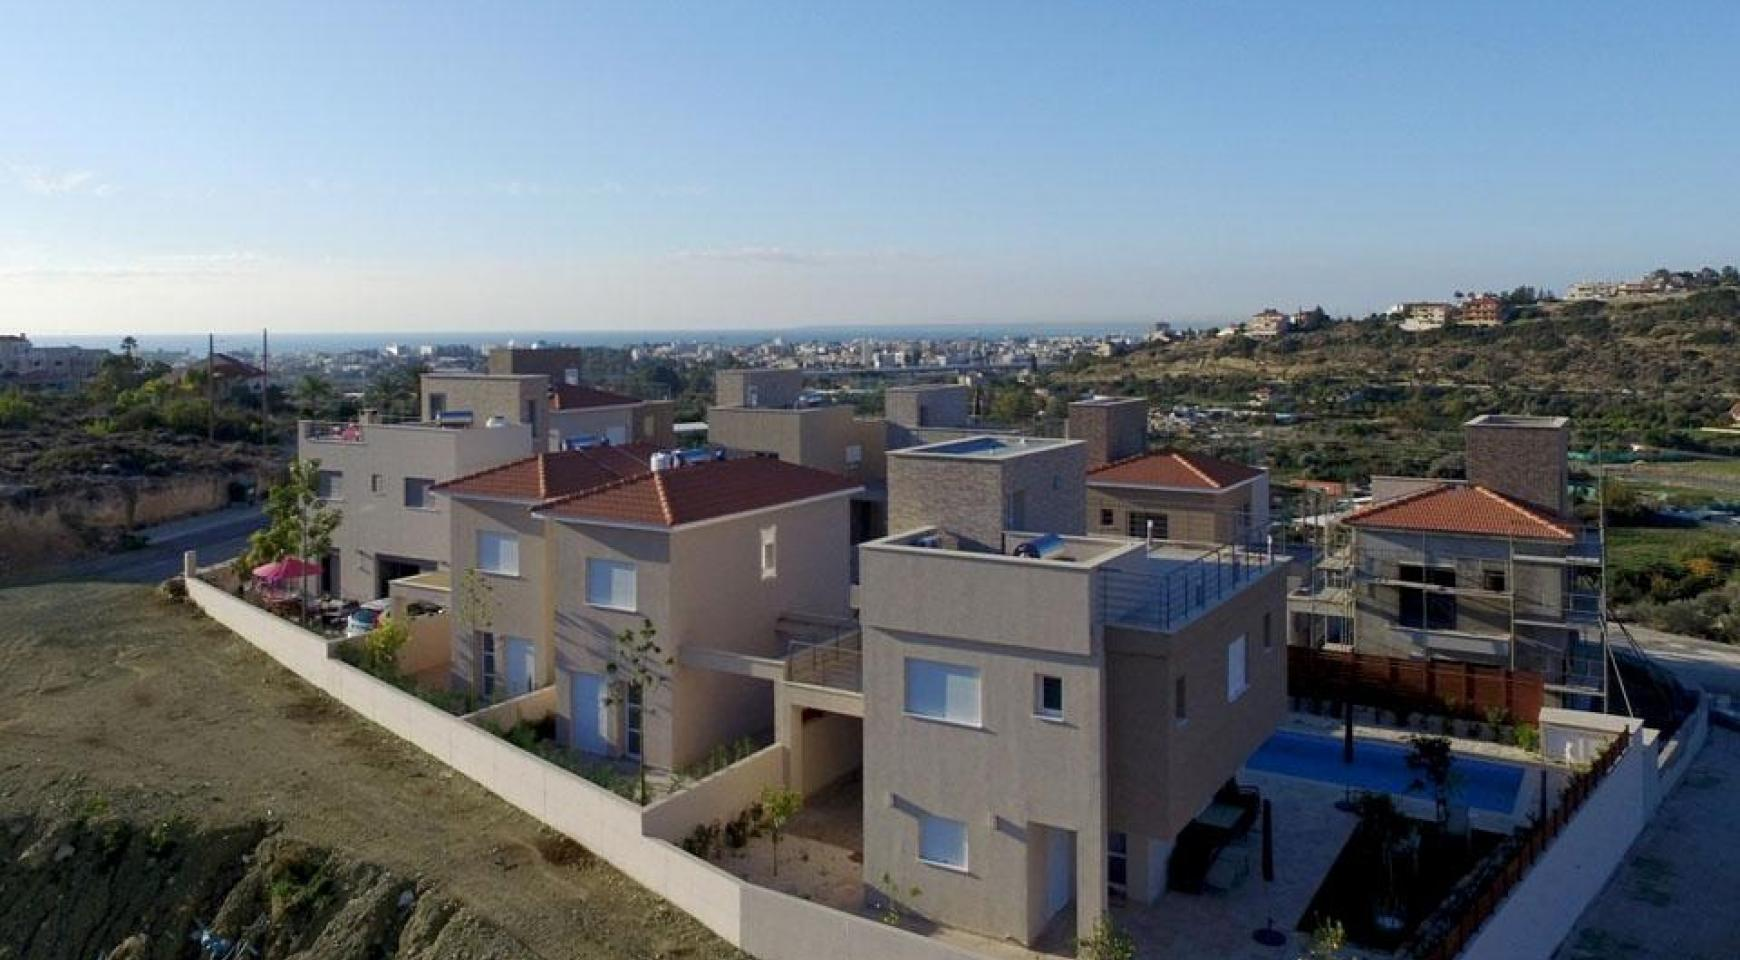 2 Bedroom House with Sea and Mountain Views in Mesovounia - 5